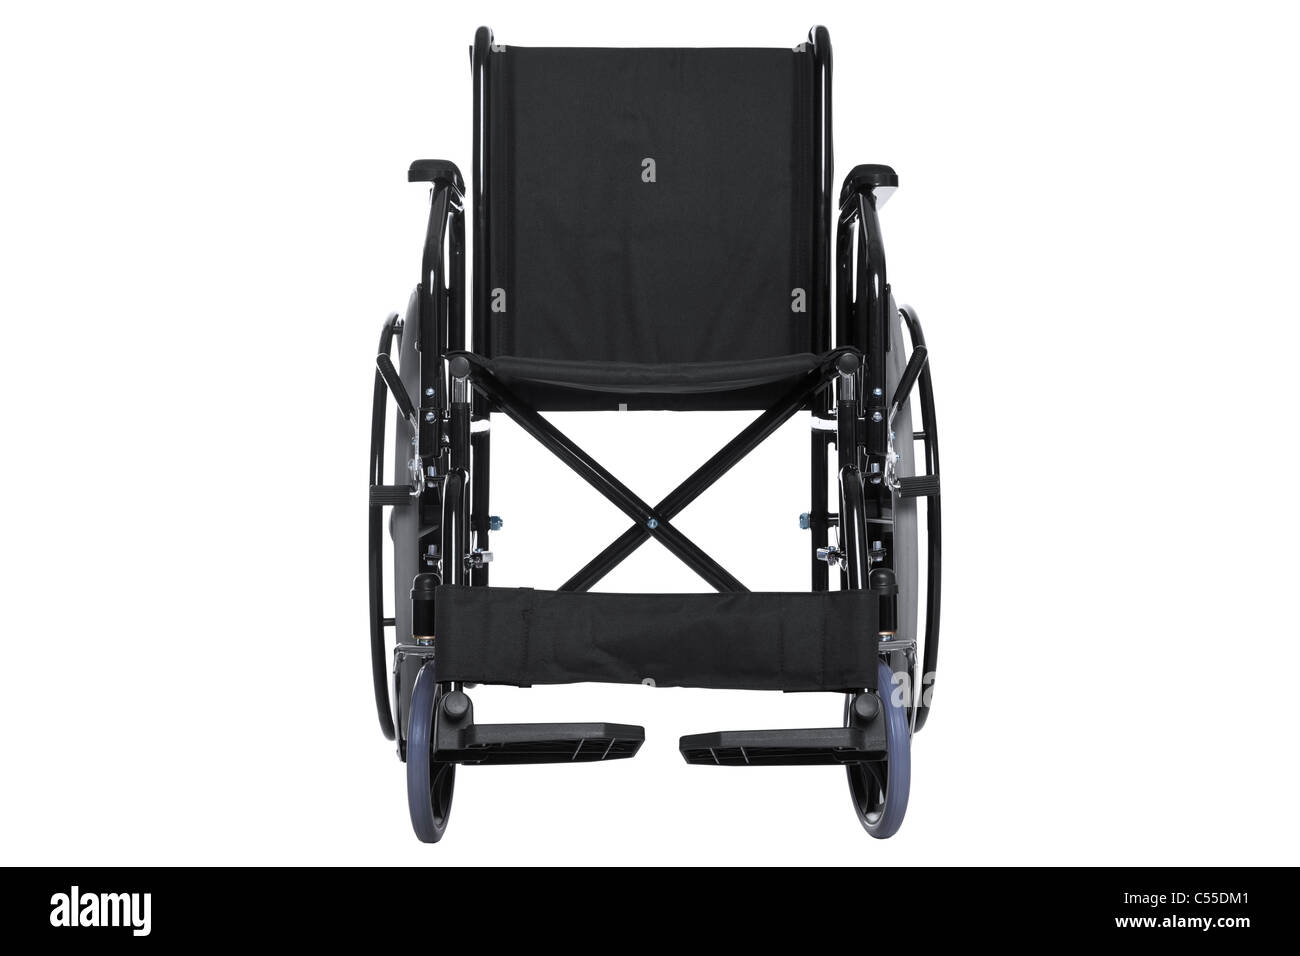 Photo of a wheelchair isolated on white with a very detailed clipping path. - Stock Image